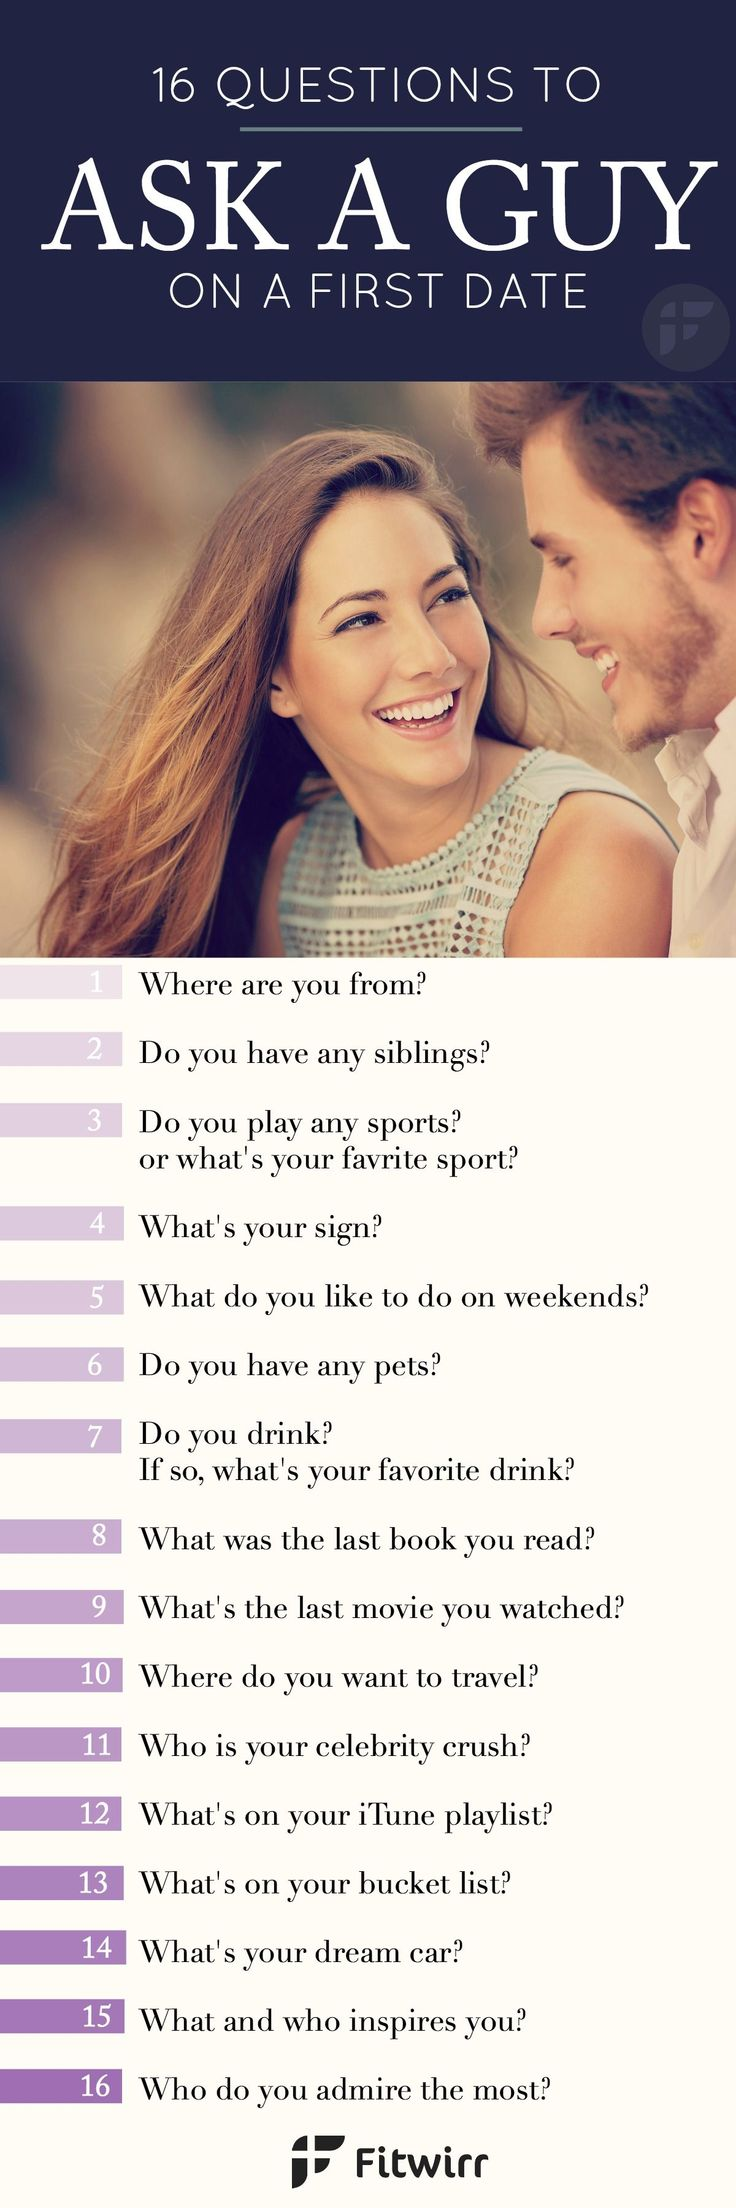 16 Questions to ask a guy on a first date to ensure flowing conversation and get a peek of his values, interests and beliefs.